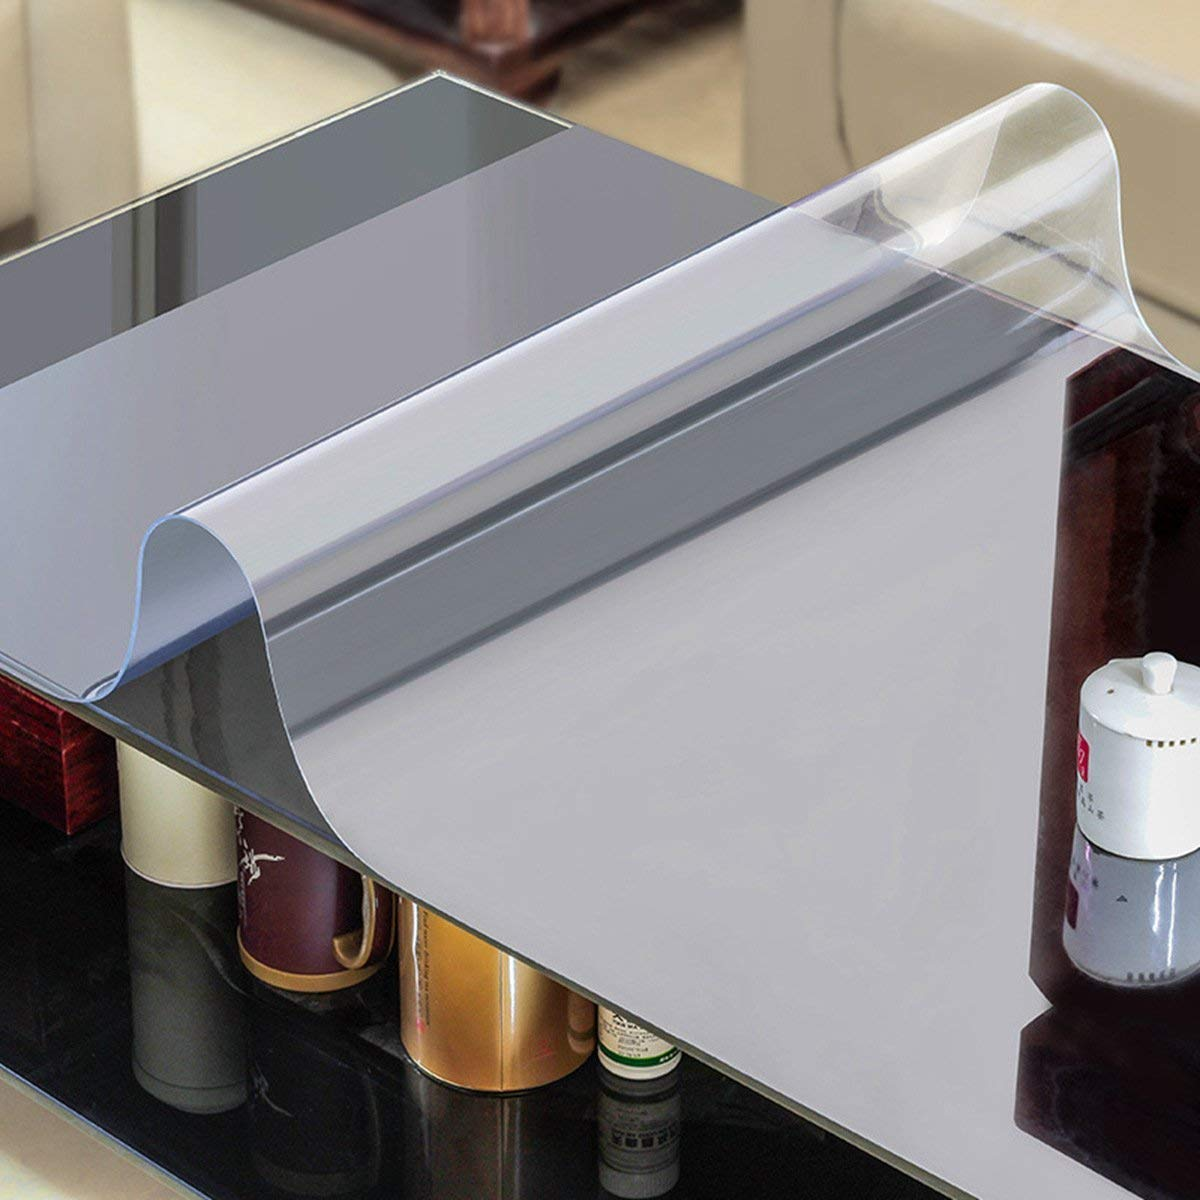 AiXiAng Waterproof Clear PVC Table Cover Protector Rectangle Plastic Tablecloth for Dining Table, Desk,Lab Bench,Marble Top Table Pads Table Covers Coffe Table Protector (2.0 mm Thick, 24 x 48 Inches)